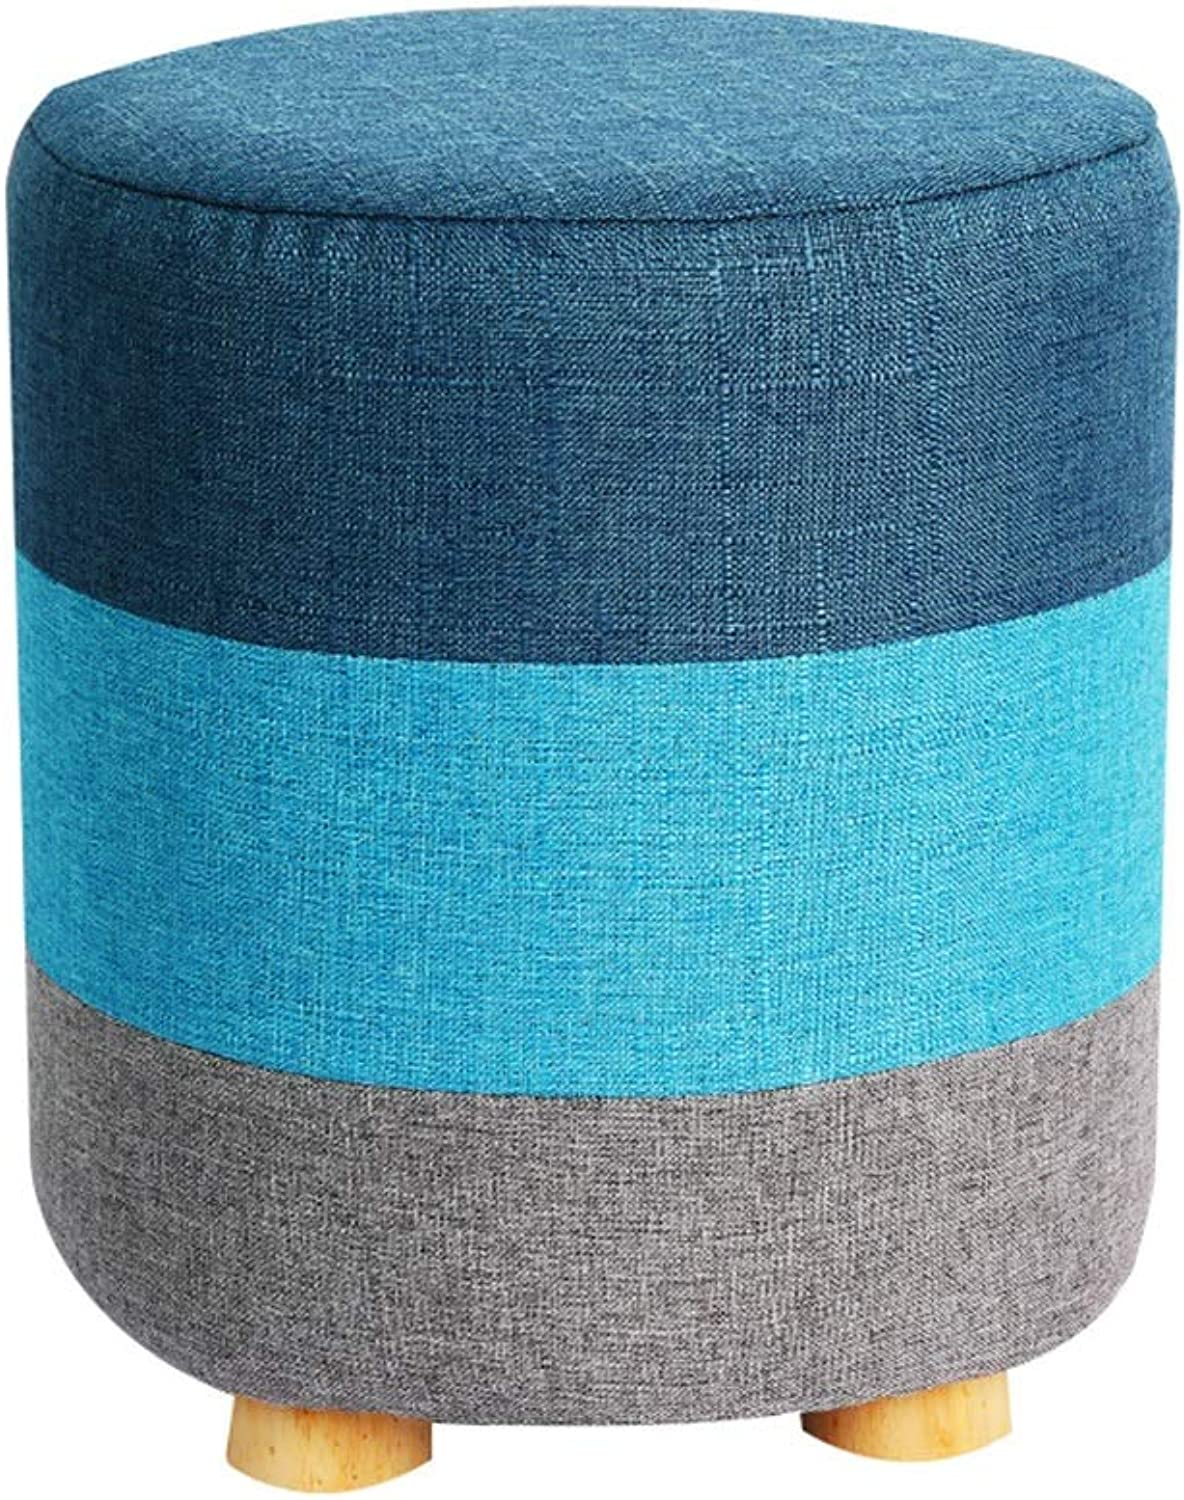 AGLZWY Sofa Stool Multipurpose Solid Wood Frame Cloth Removable and Washable Non-Slip Bearing Strong Round Stool Change shoes Bench, 5 colors, 29X28X32cm (color   bluee, Size   29X28X32cm)